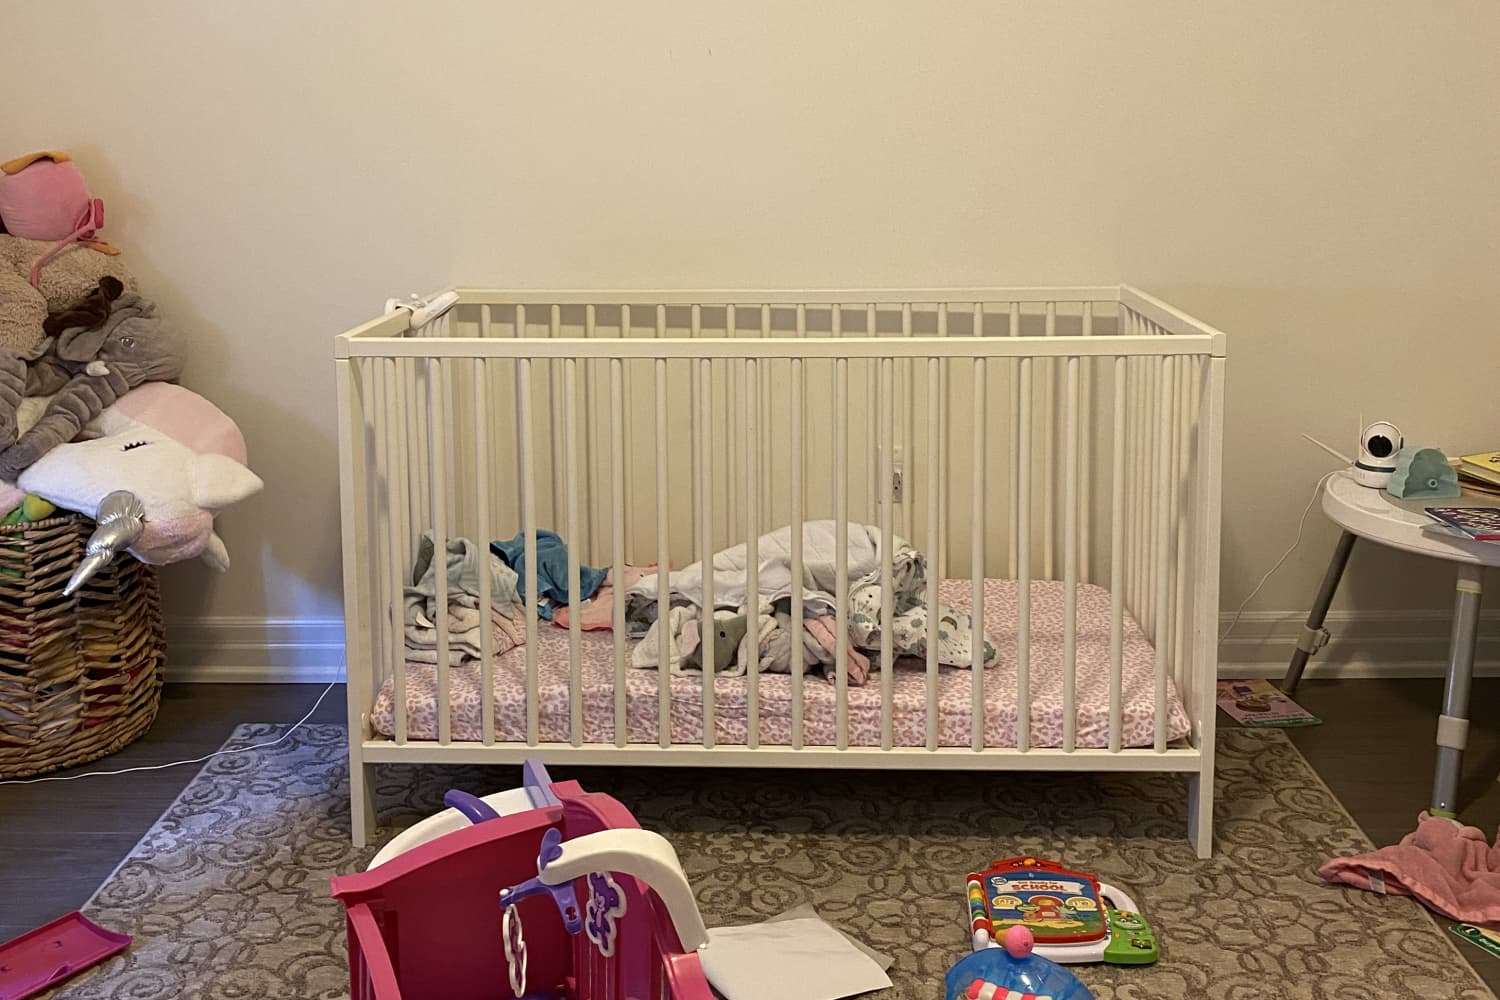 Before and After: 2 Rainbow Paint Projects Totaling $170 Brighten This Once-Boring Nursery